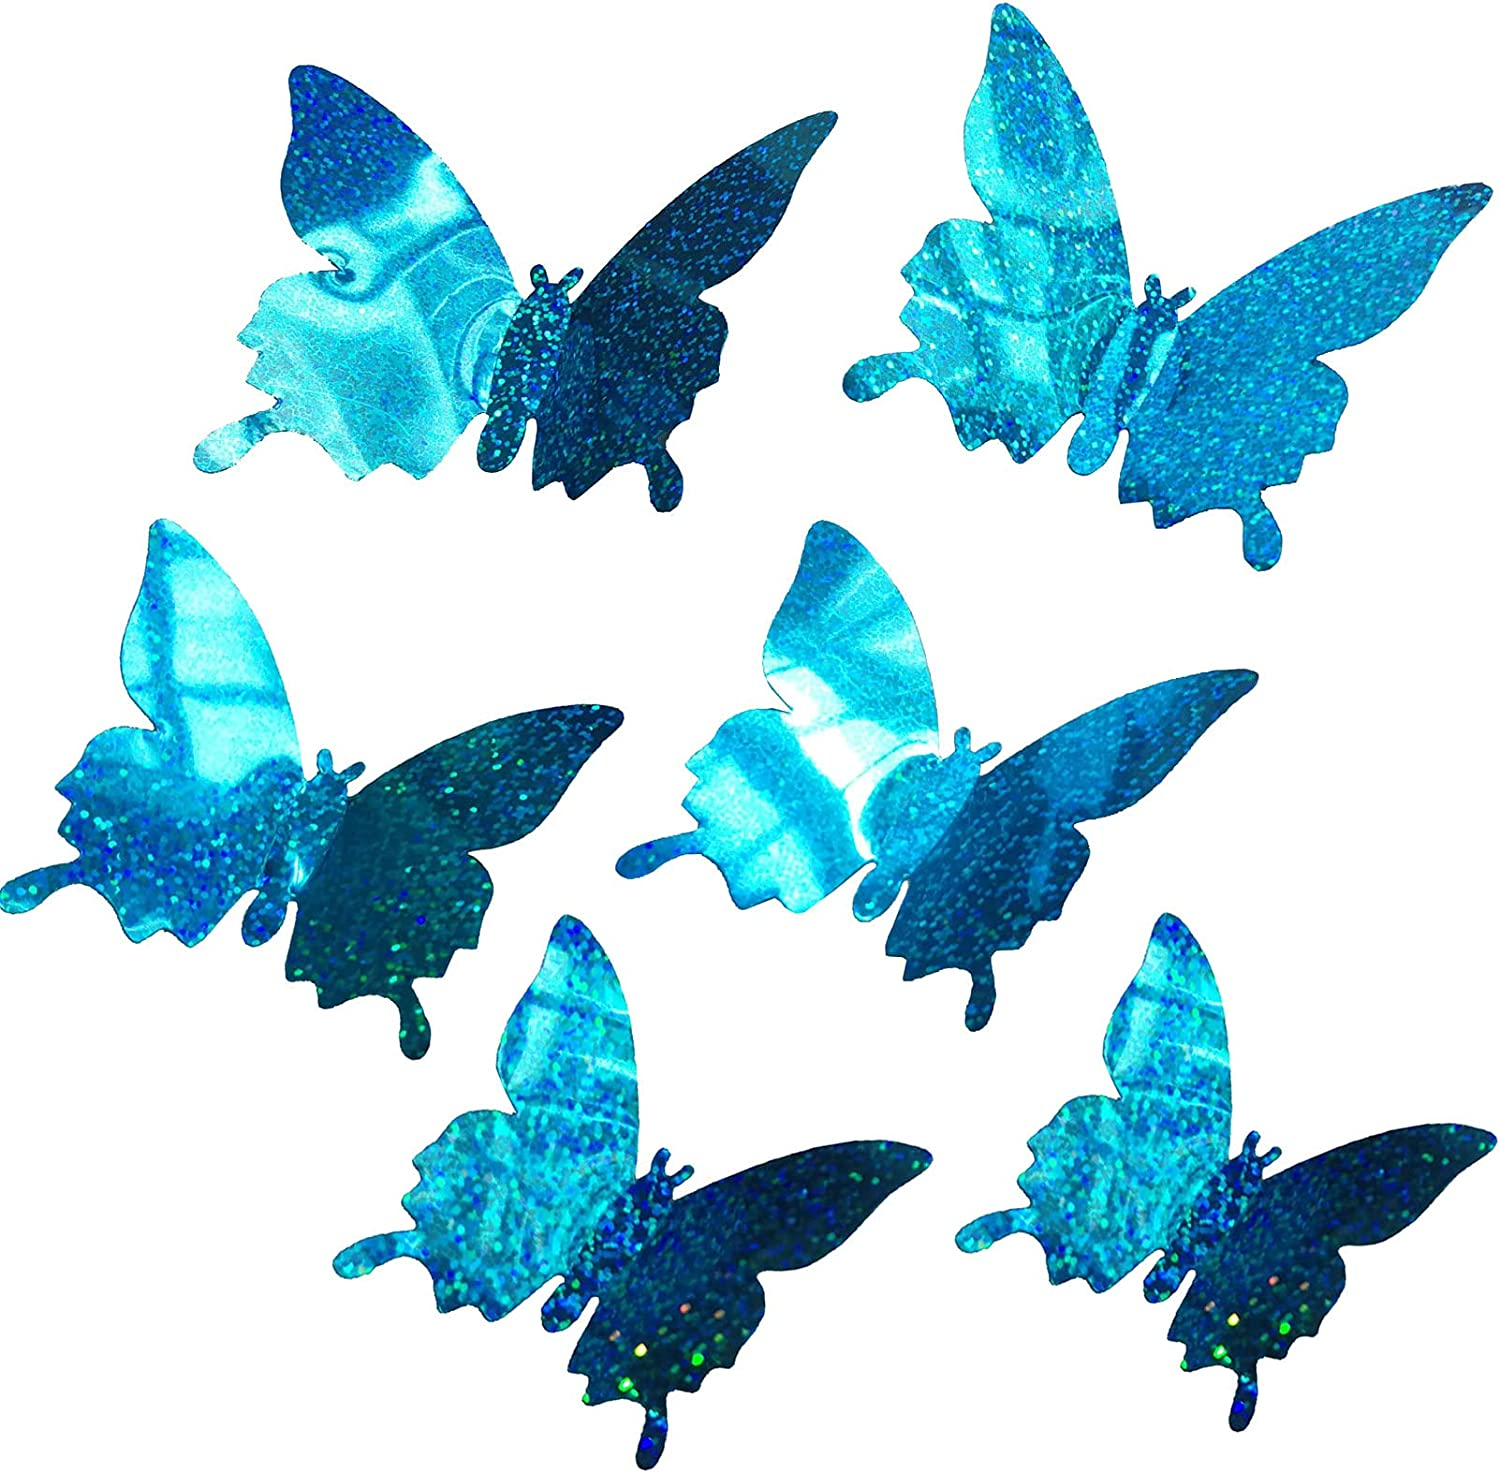 Mudboo Butterfly Wall Albuquerque Mall Topics on TV Decor Sticker Decal Size 3 PCS 24 3D